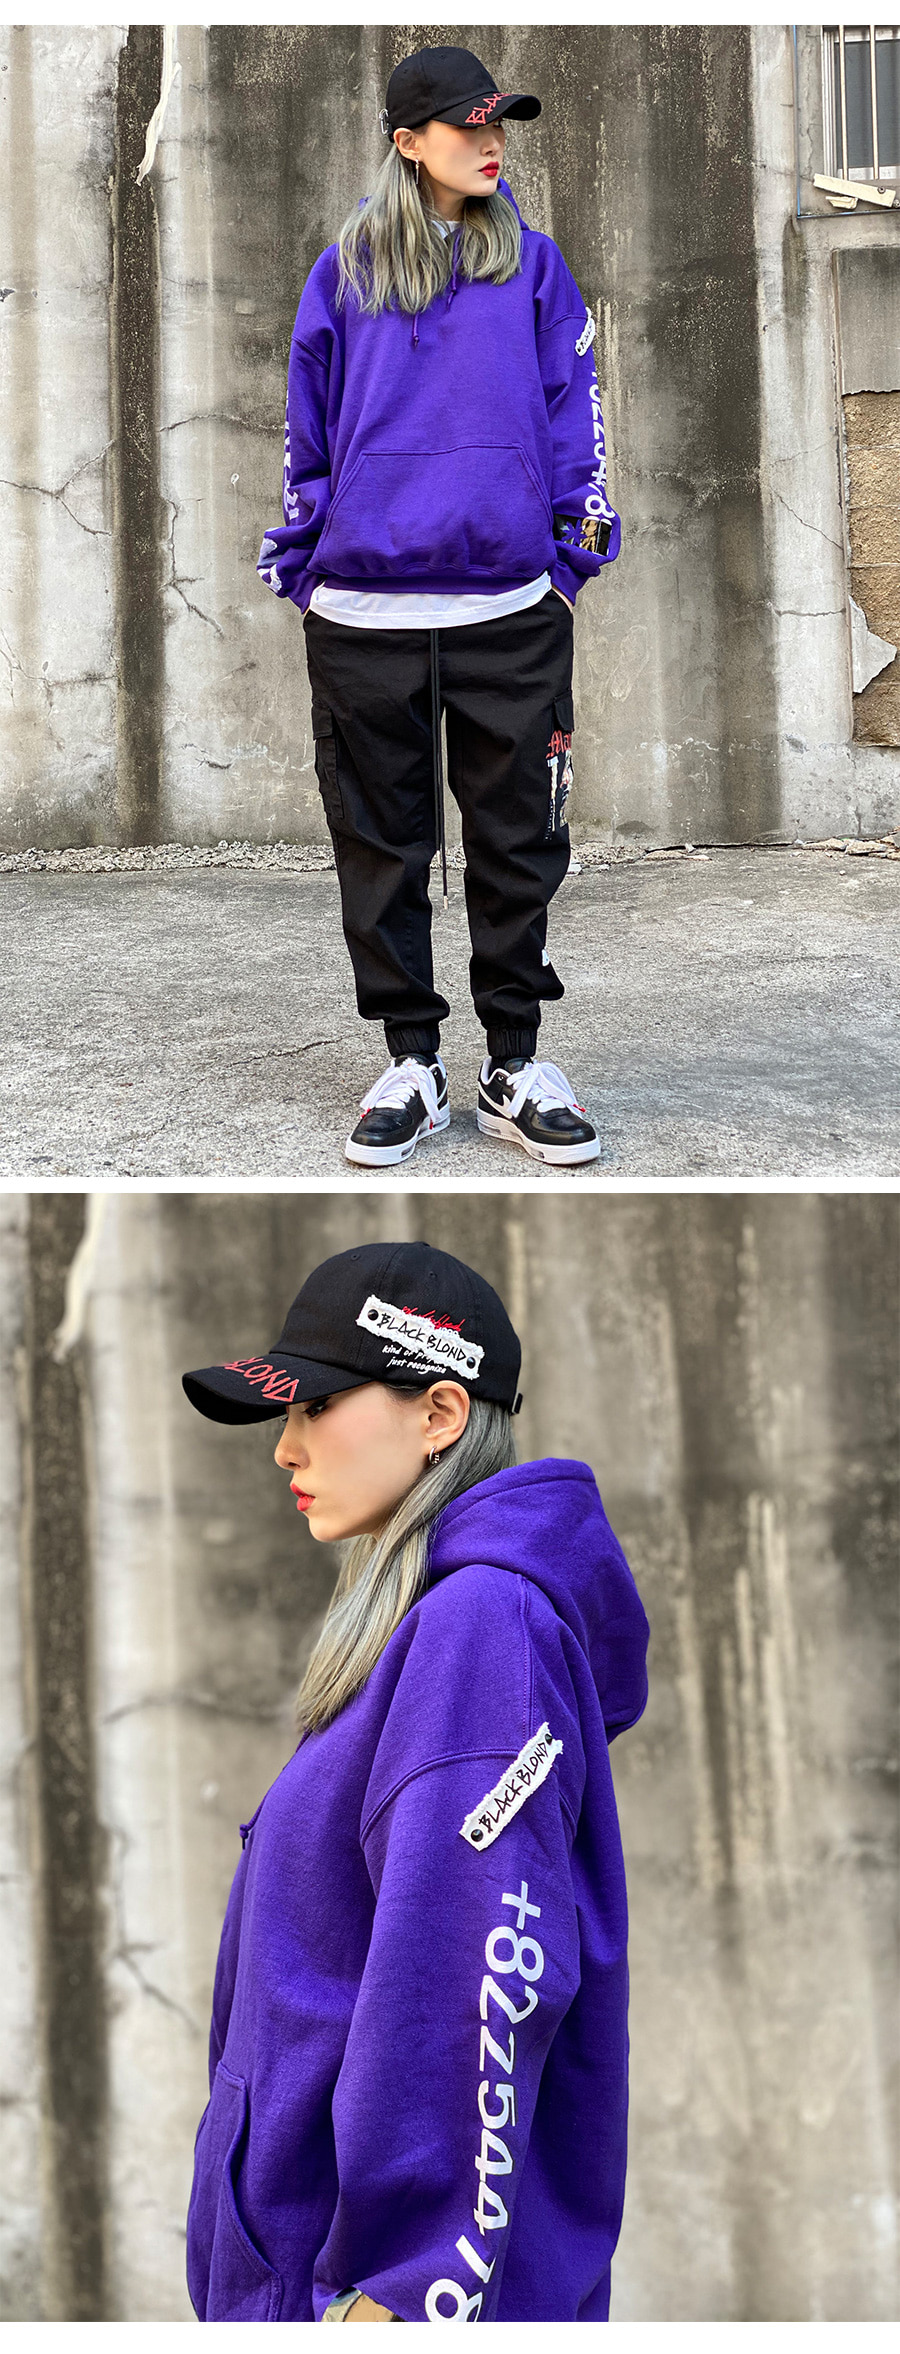 BLACKBLOND - BBD Graffiti Number Hoodie (Purple)